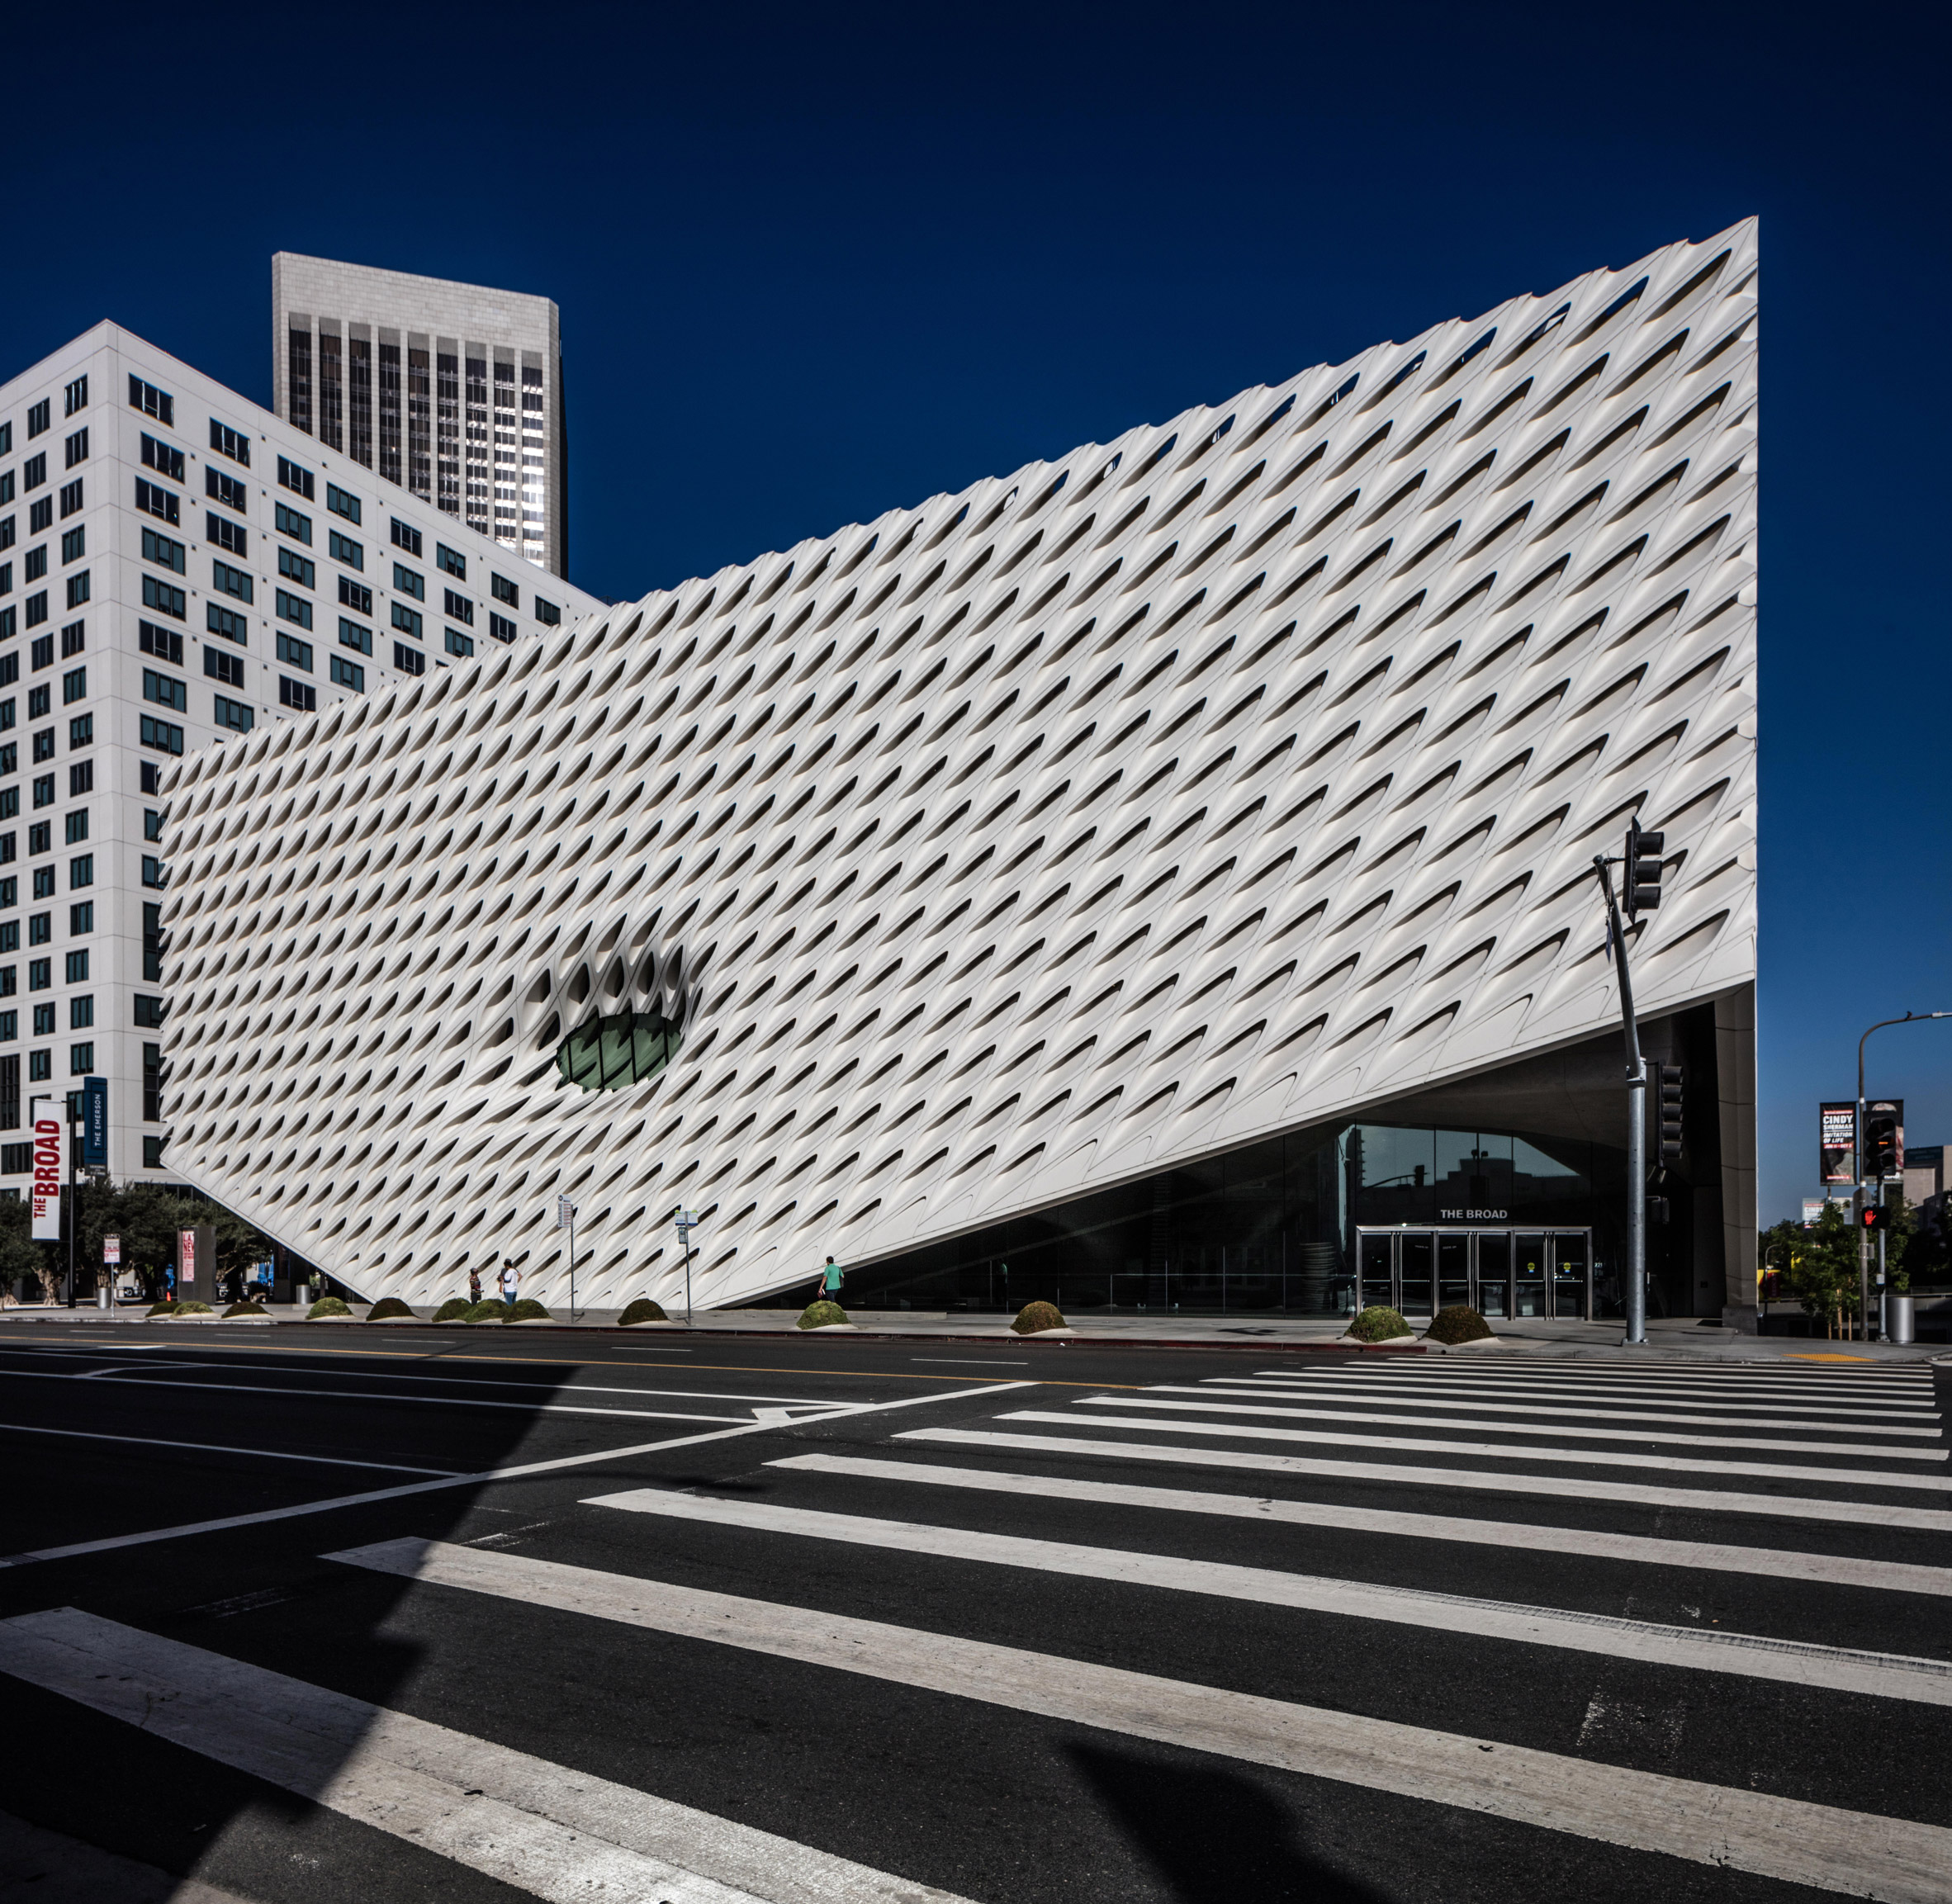 Edmon Leong photographs Diller Scofidio + Renfro's The Broad in Los Angeles one year after opening